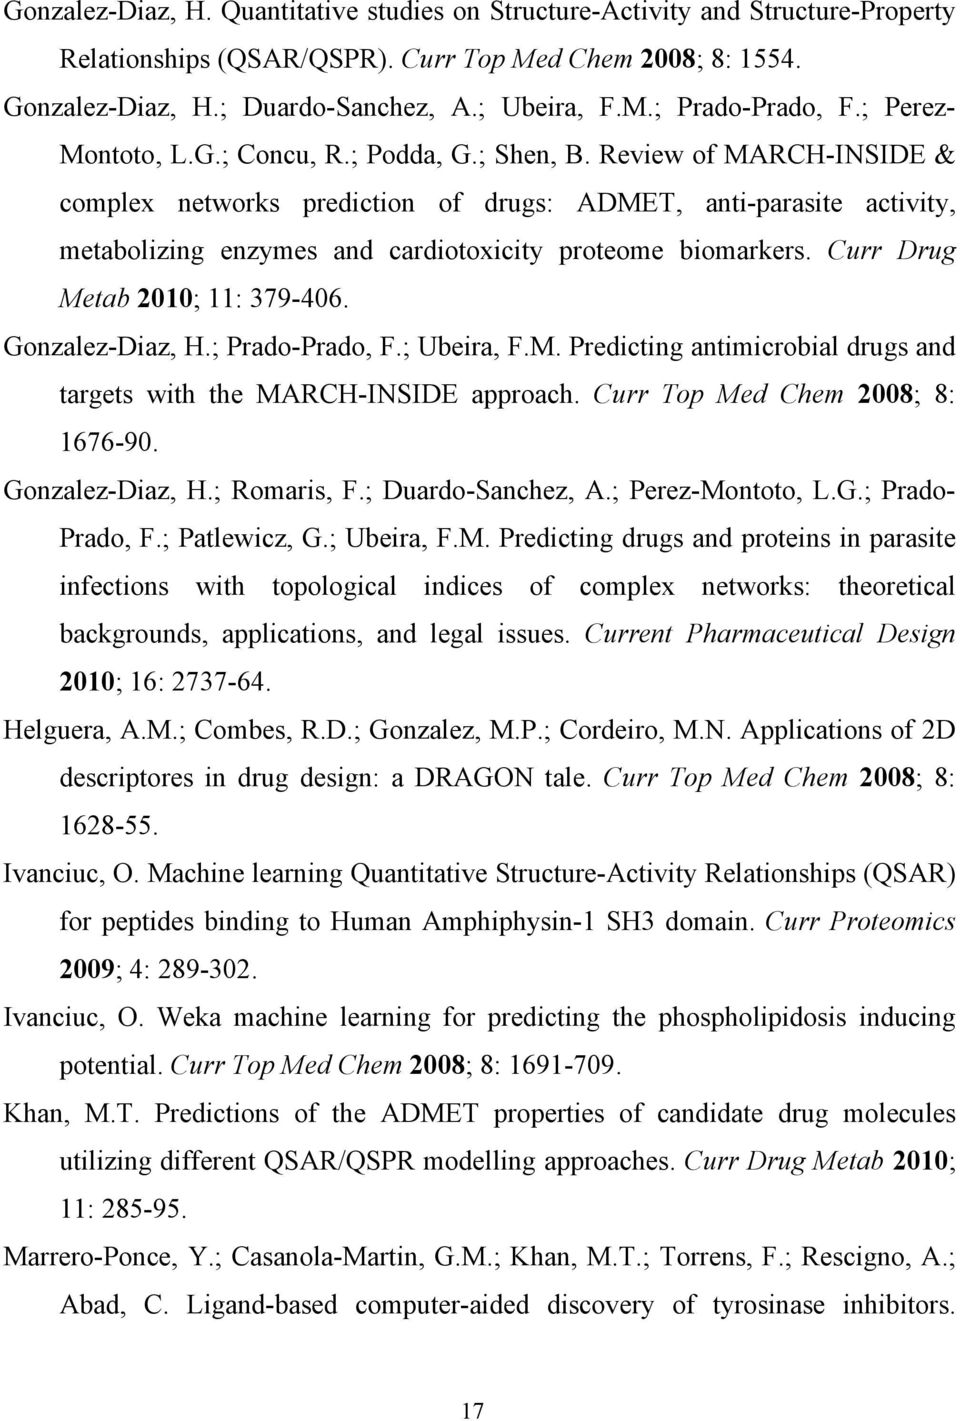 Review of MARCH-INSIDE & complex networs prediction of drugs: ADMET, anti-parasite activity, metabolizing enzymes and cardiotoxicity proteome biomarers. Curr Drug Metab 2010; 11: 379-406.